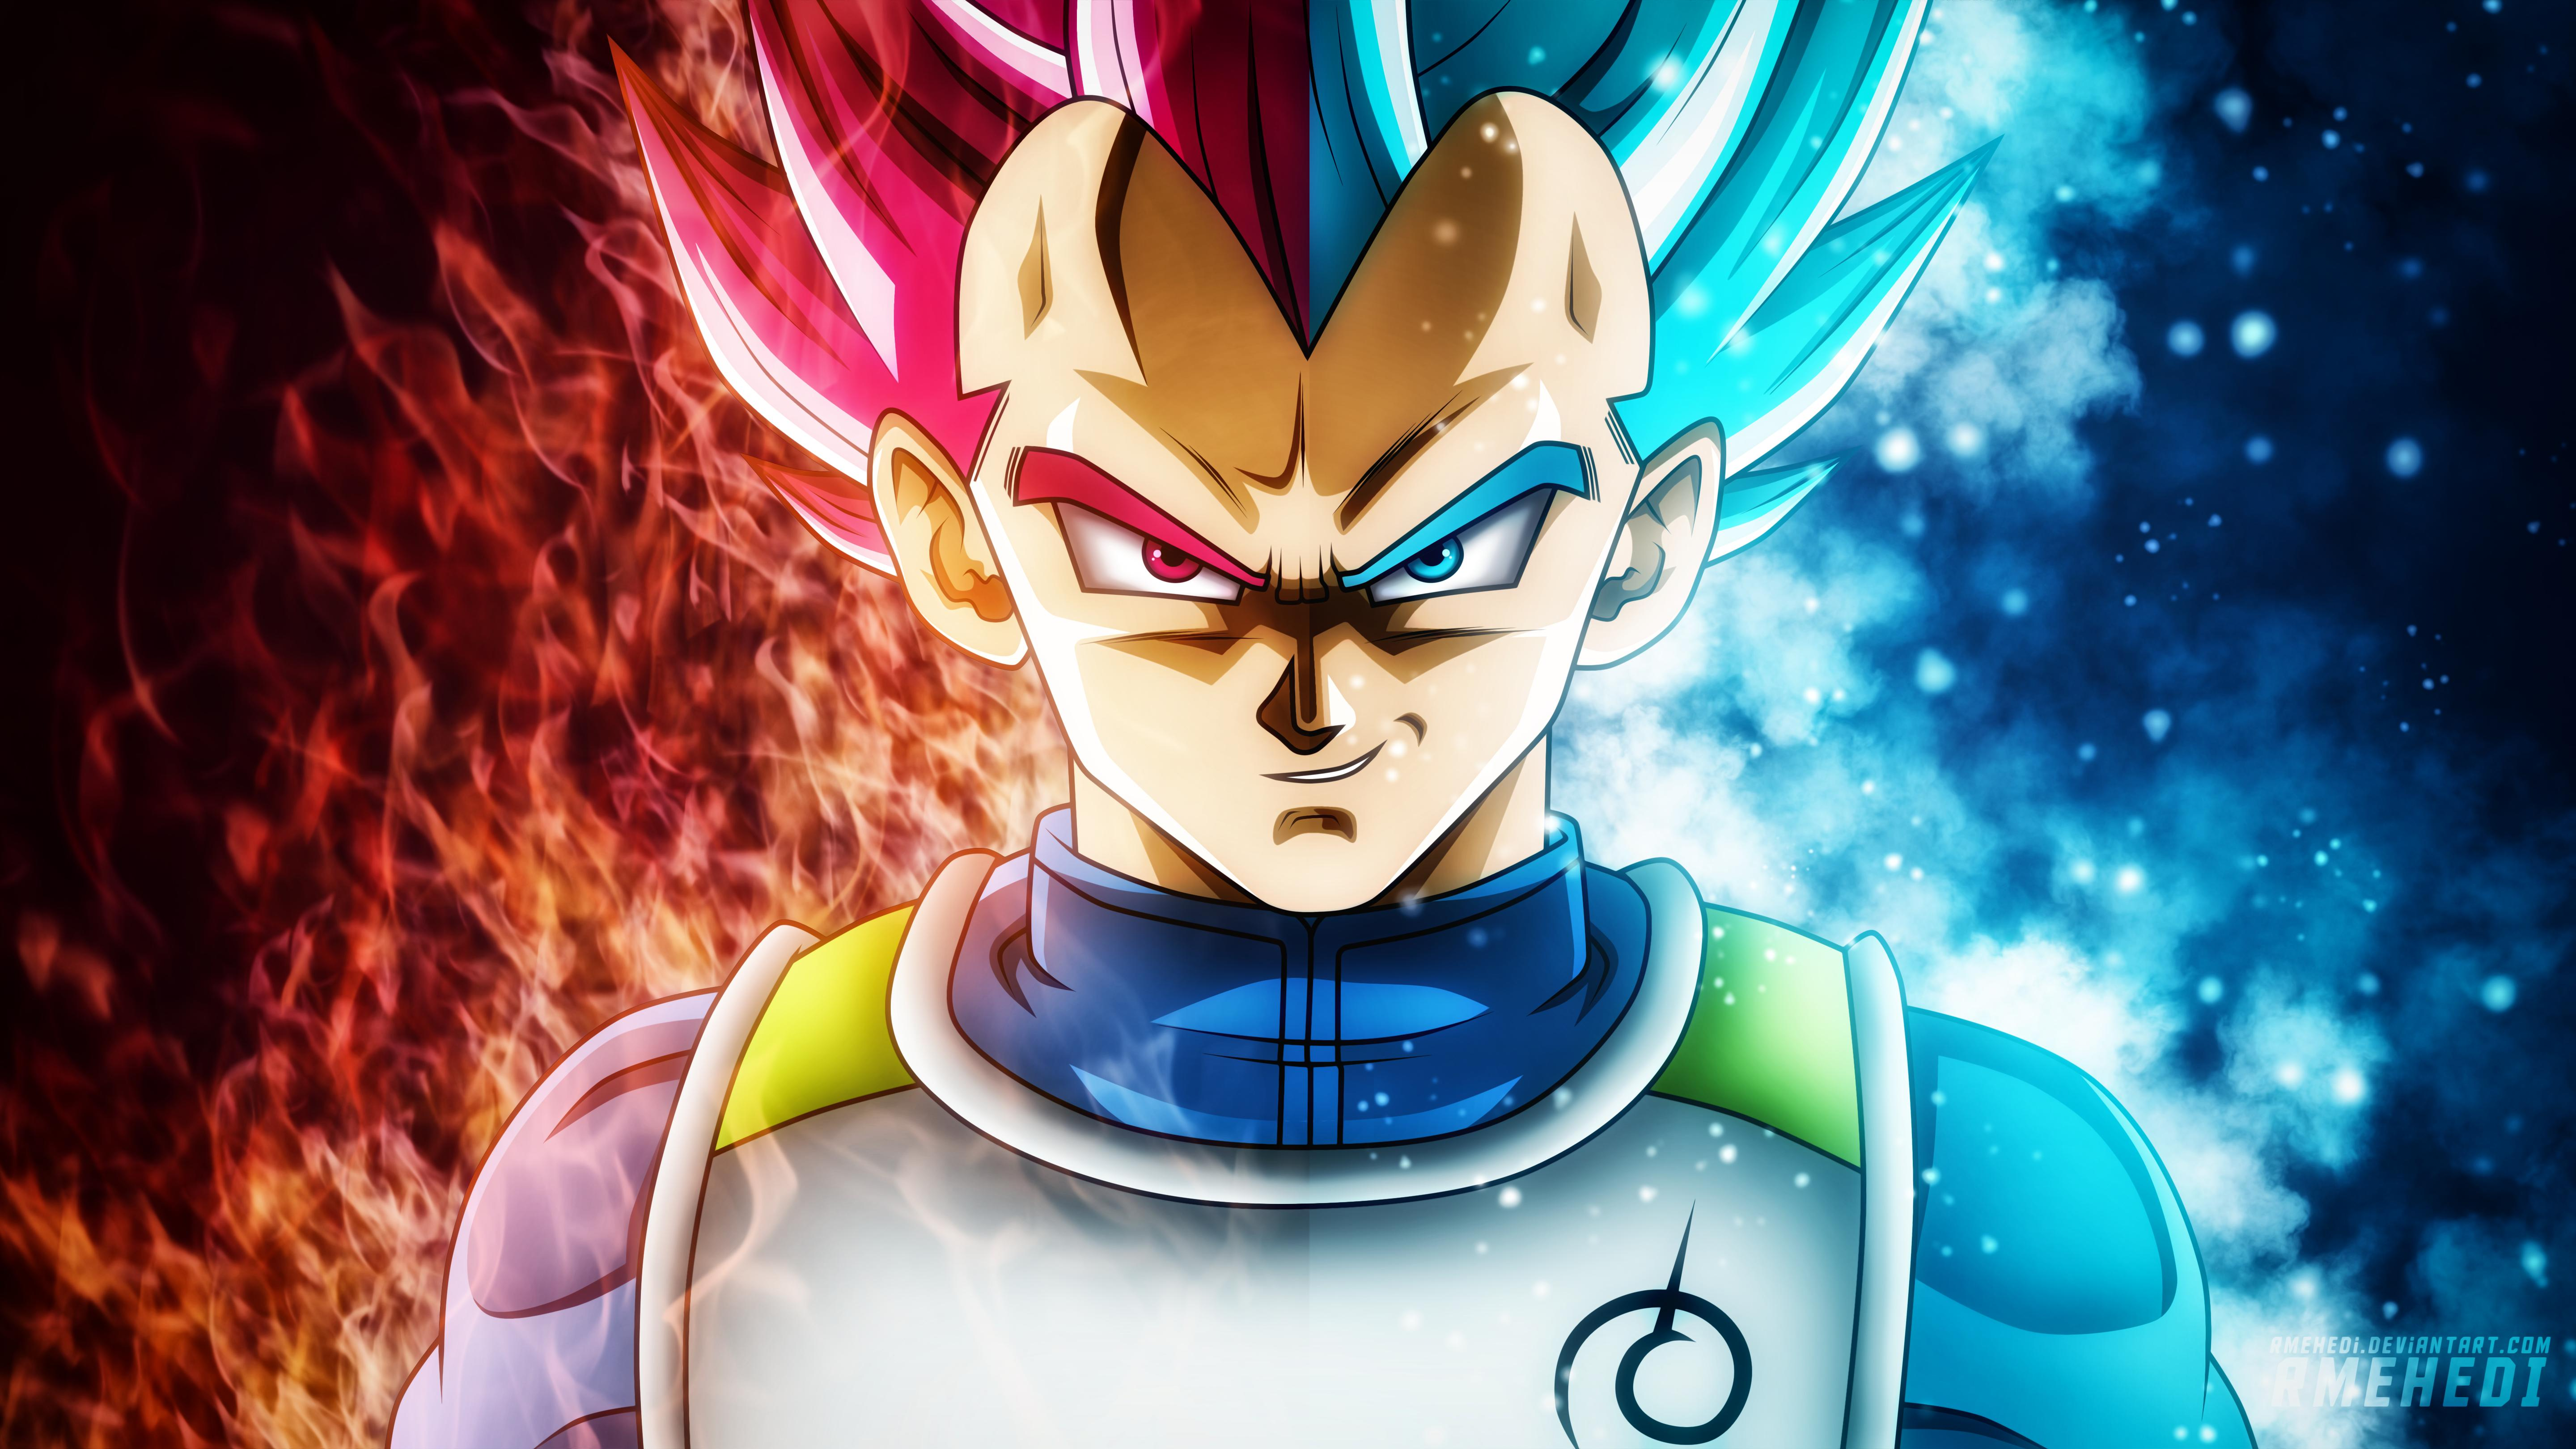 Dragon ball super anime 5k hd anime 4k wallpapers - 5k anime wallpaper ...